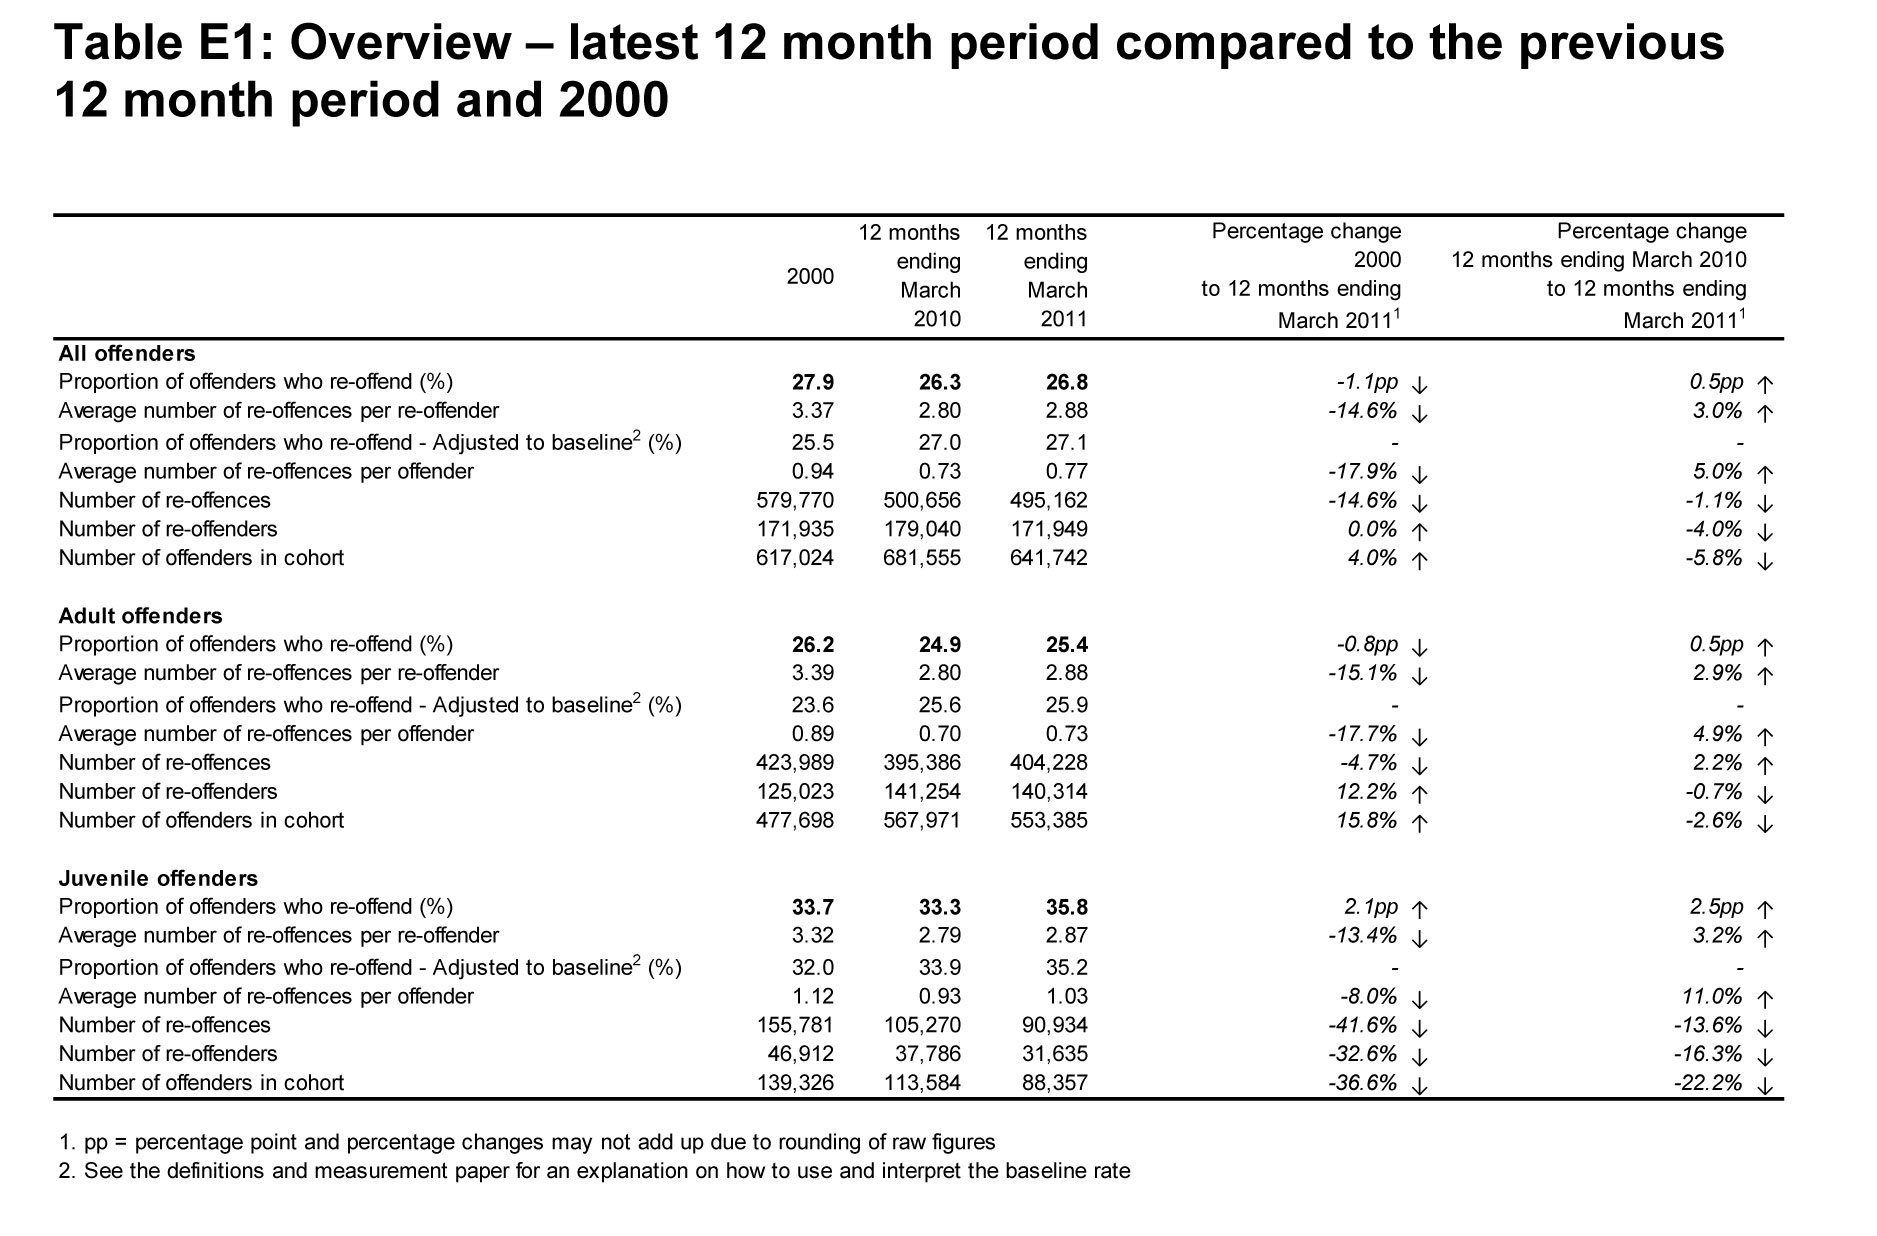 Table E1: Overview – 12 months ending March 2011 compared to 2000